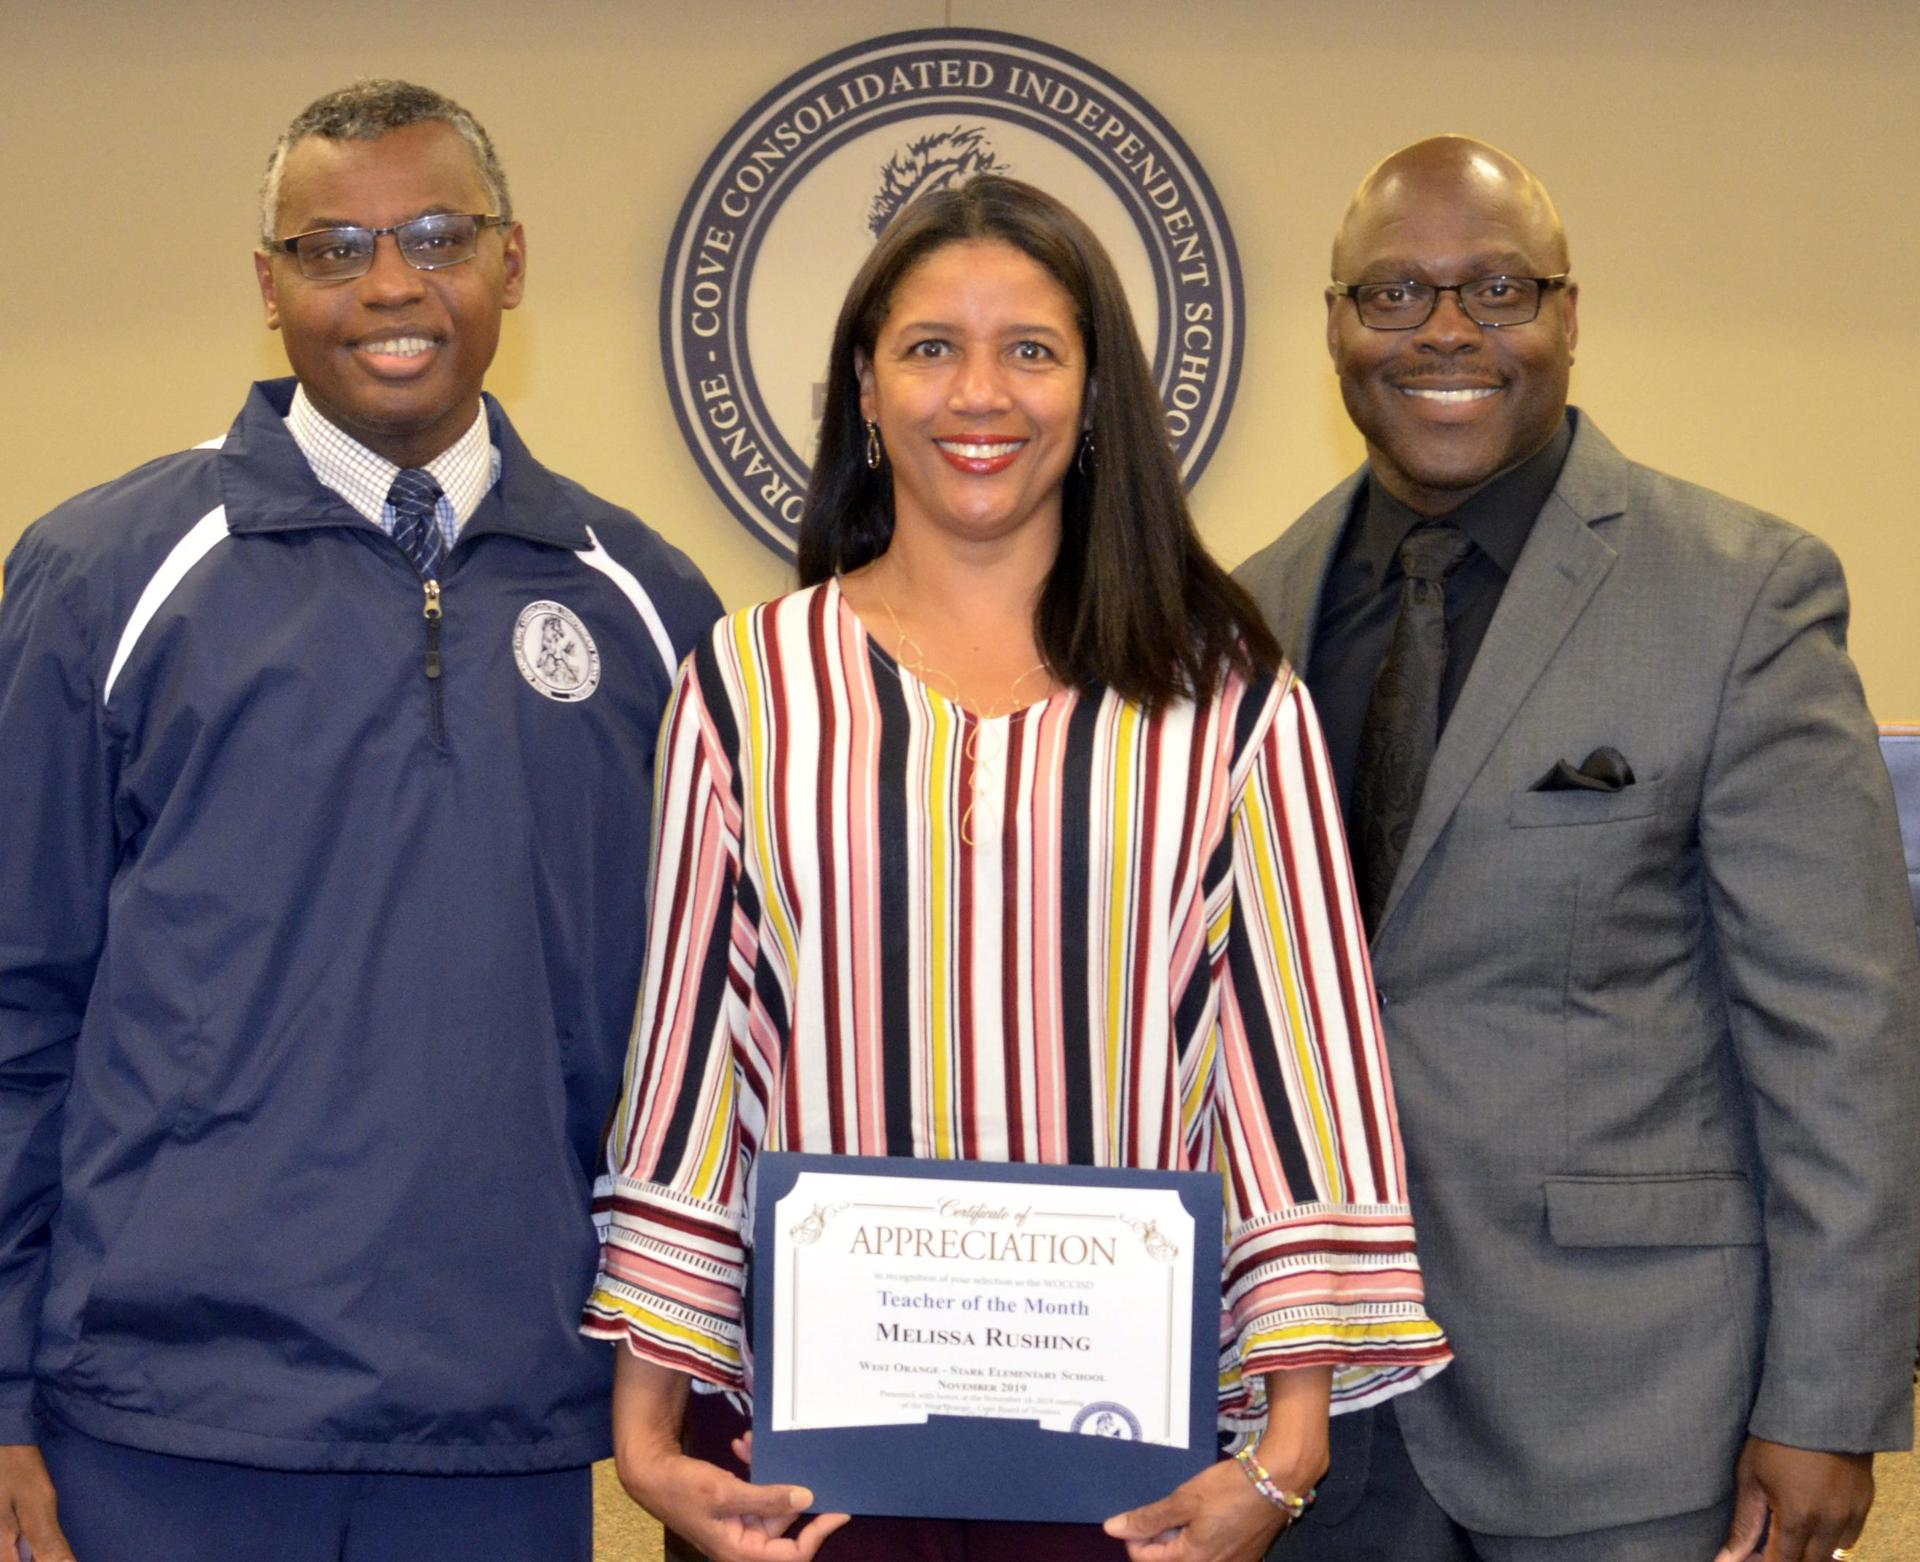 Melissa Rushing, Teacher of the month for November is pictured with Principal Dr. Bethley and Superintendent Dr. Harris